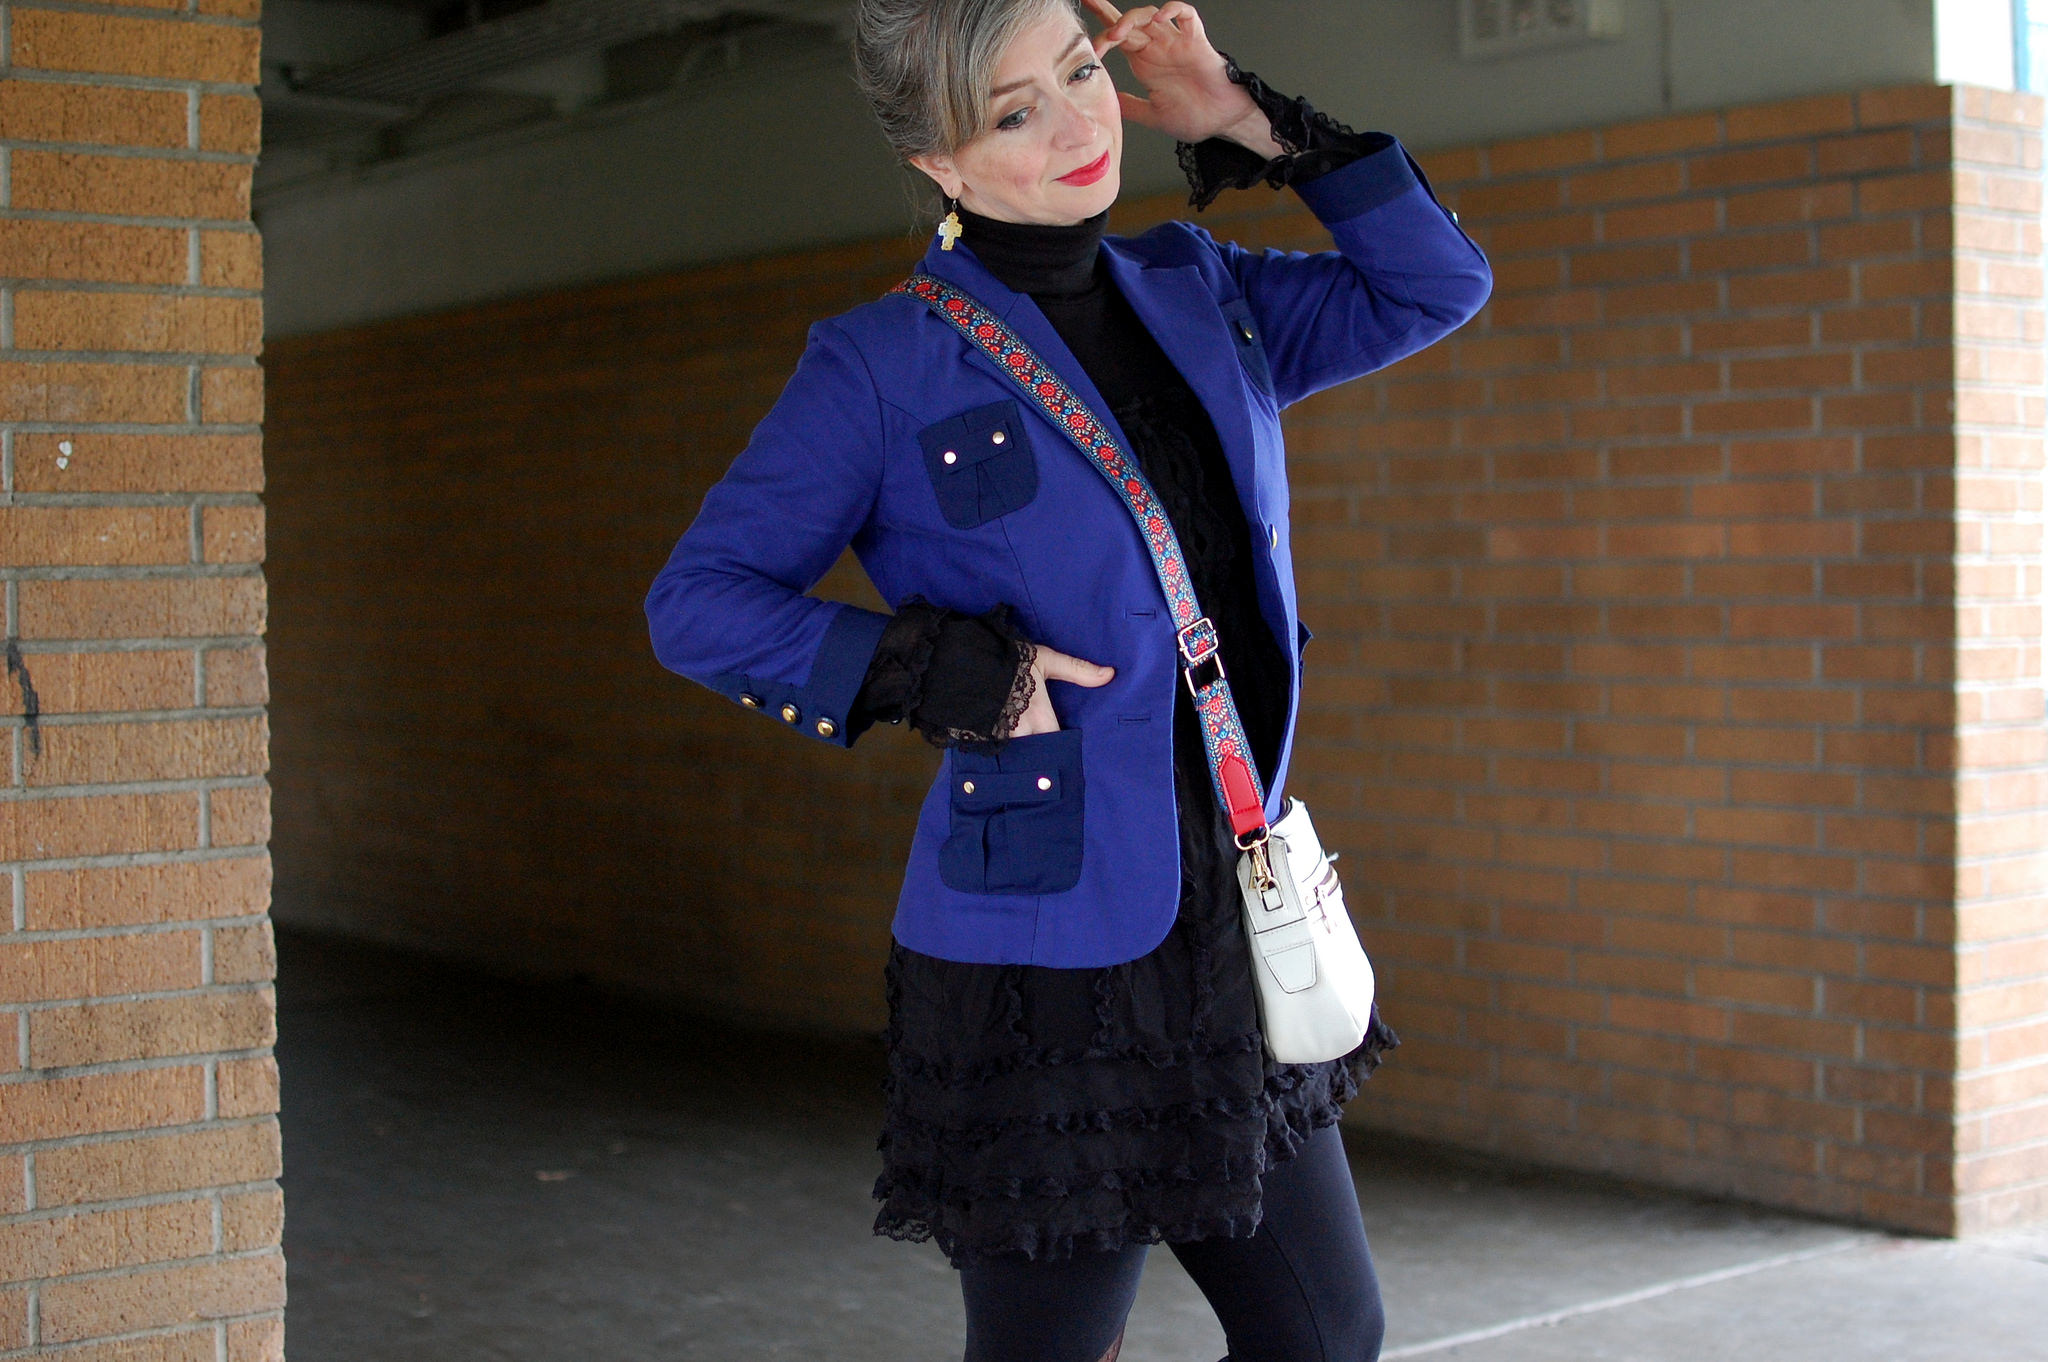 sheer ruffled babydoll dress blue blazer daily outfit blog whatiwore2day ootd